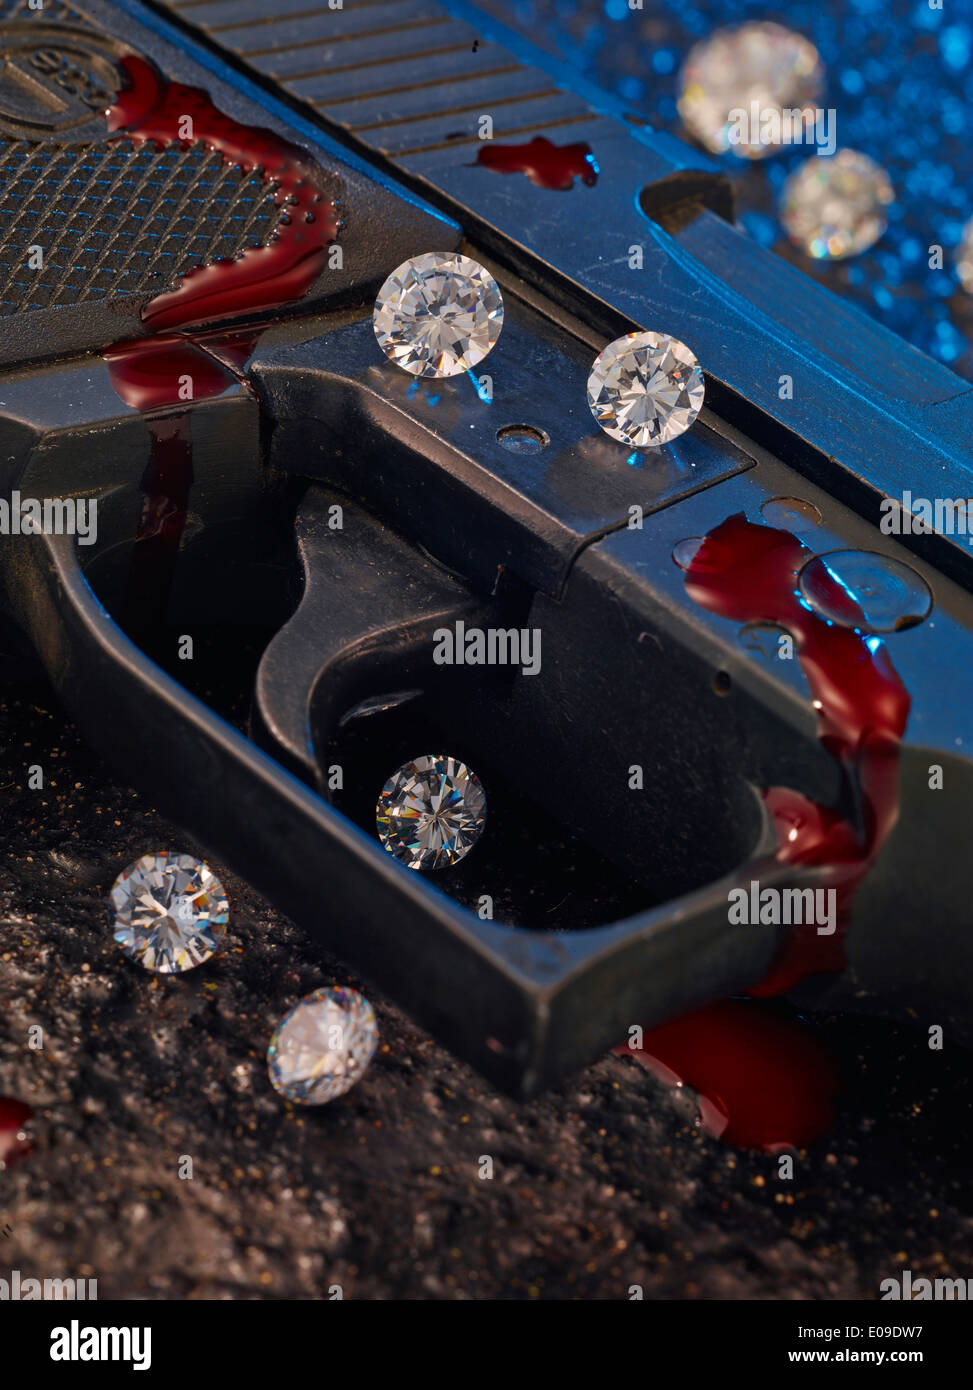 Trigger of pistol with diamonds and blood, close-up - Stock Image